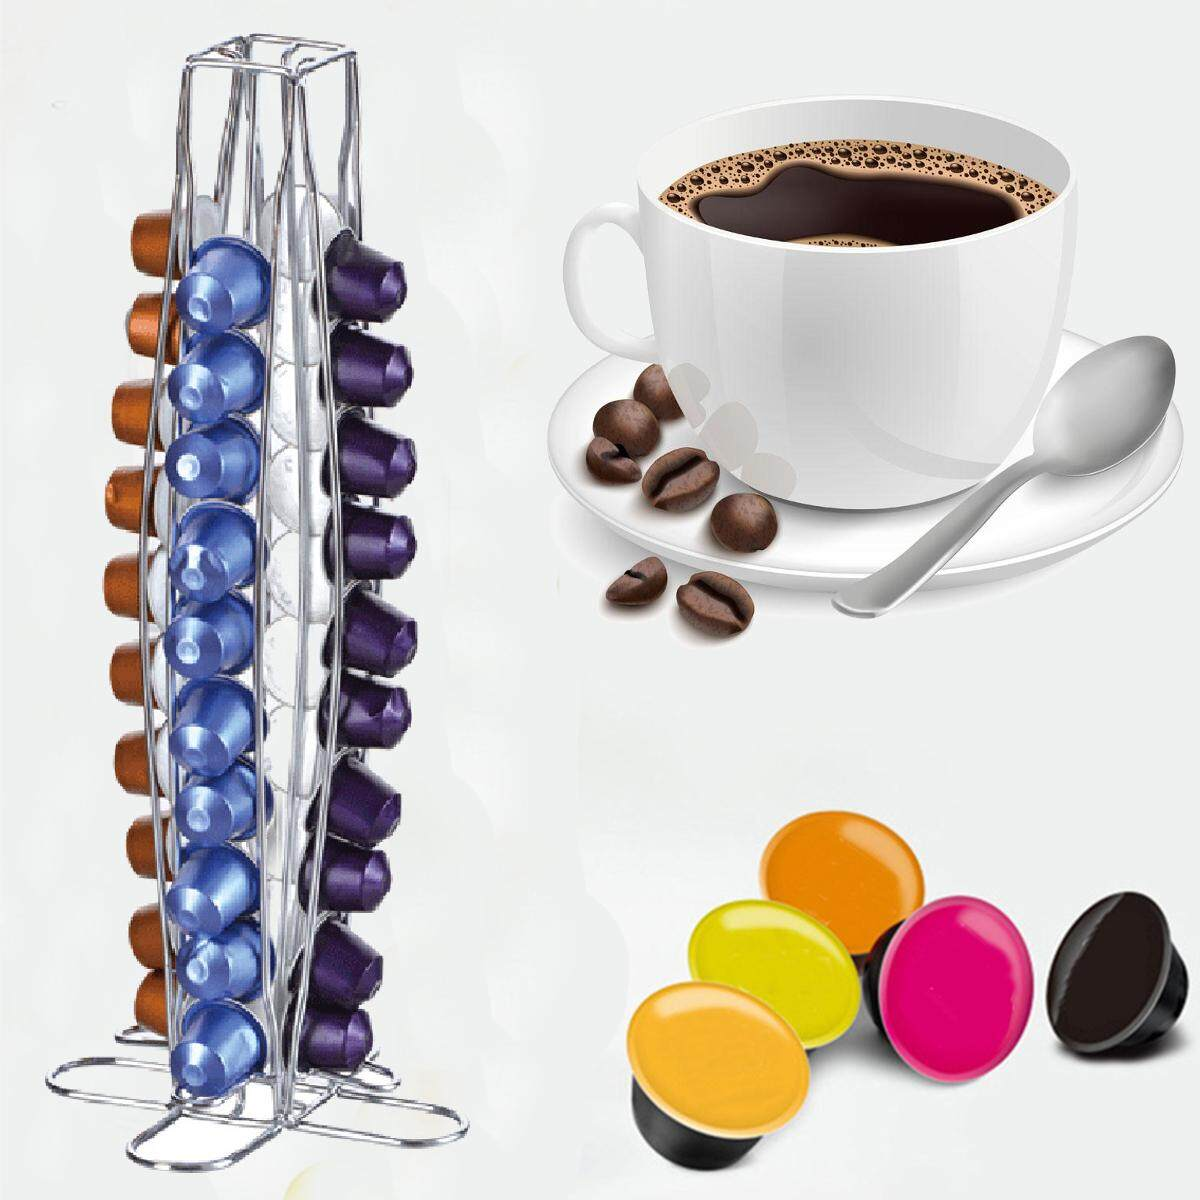 Revolving Rotating 40 Capsule Coffee Pod Holder Tower Stand Rack For Nespresso By Moonbeam.